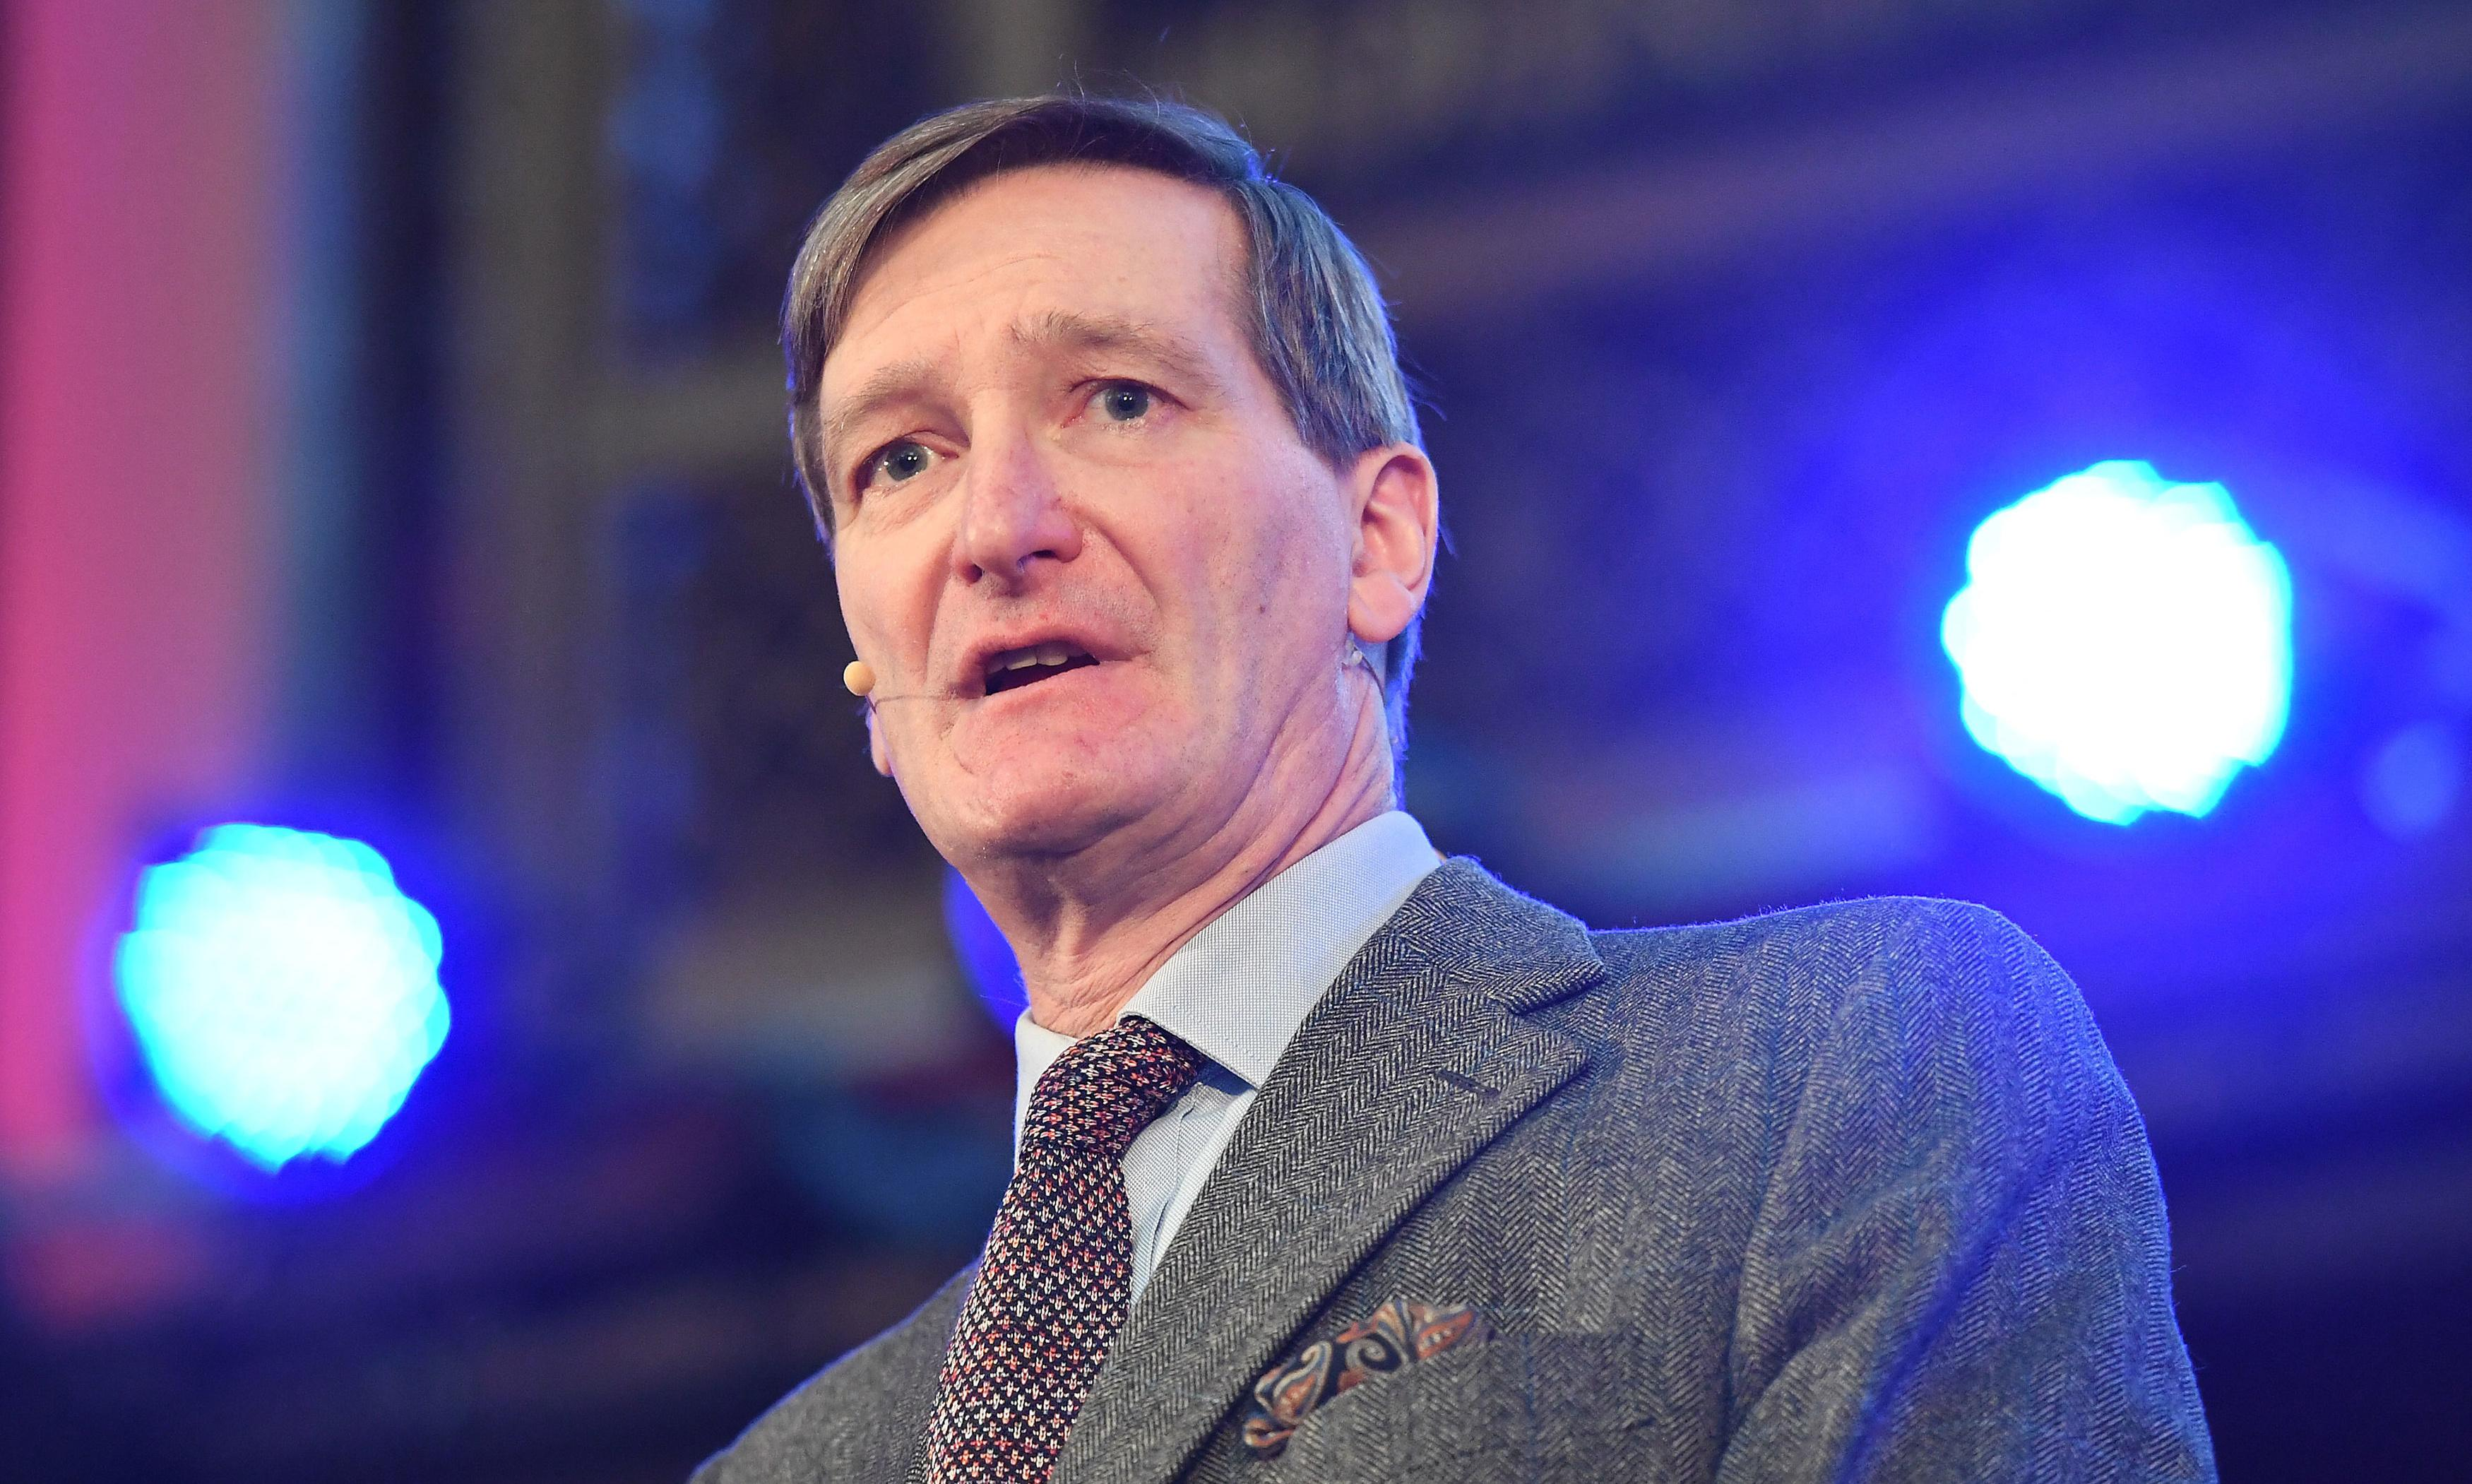 Dominic Grieve: PM's rhetoric led directly to death threats